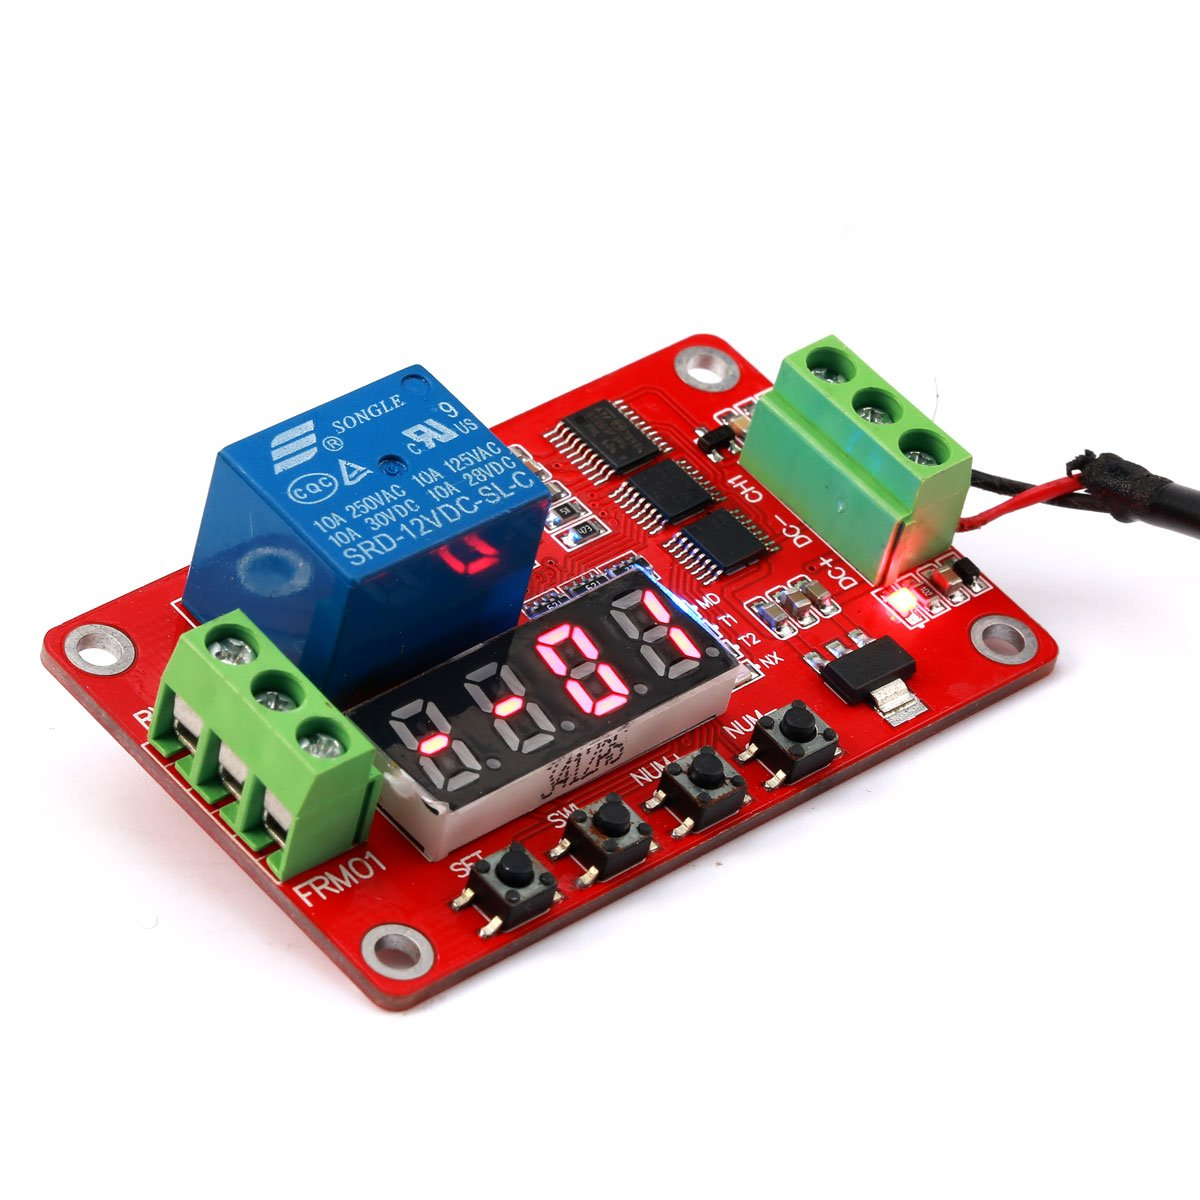 Geri Newer Version 12v Multifunction Relay Cycle Timer Module Seven Segment Counter Display Circuit Mains Failure Alarm Programmable With Customized Settings Increased To 18 Modes